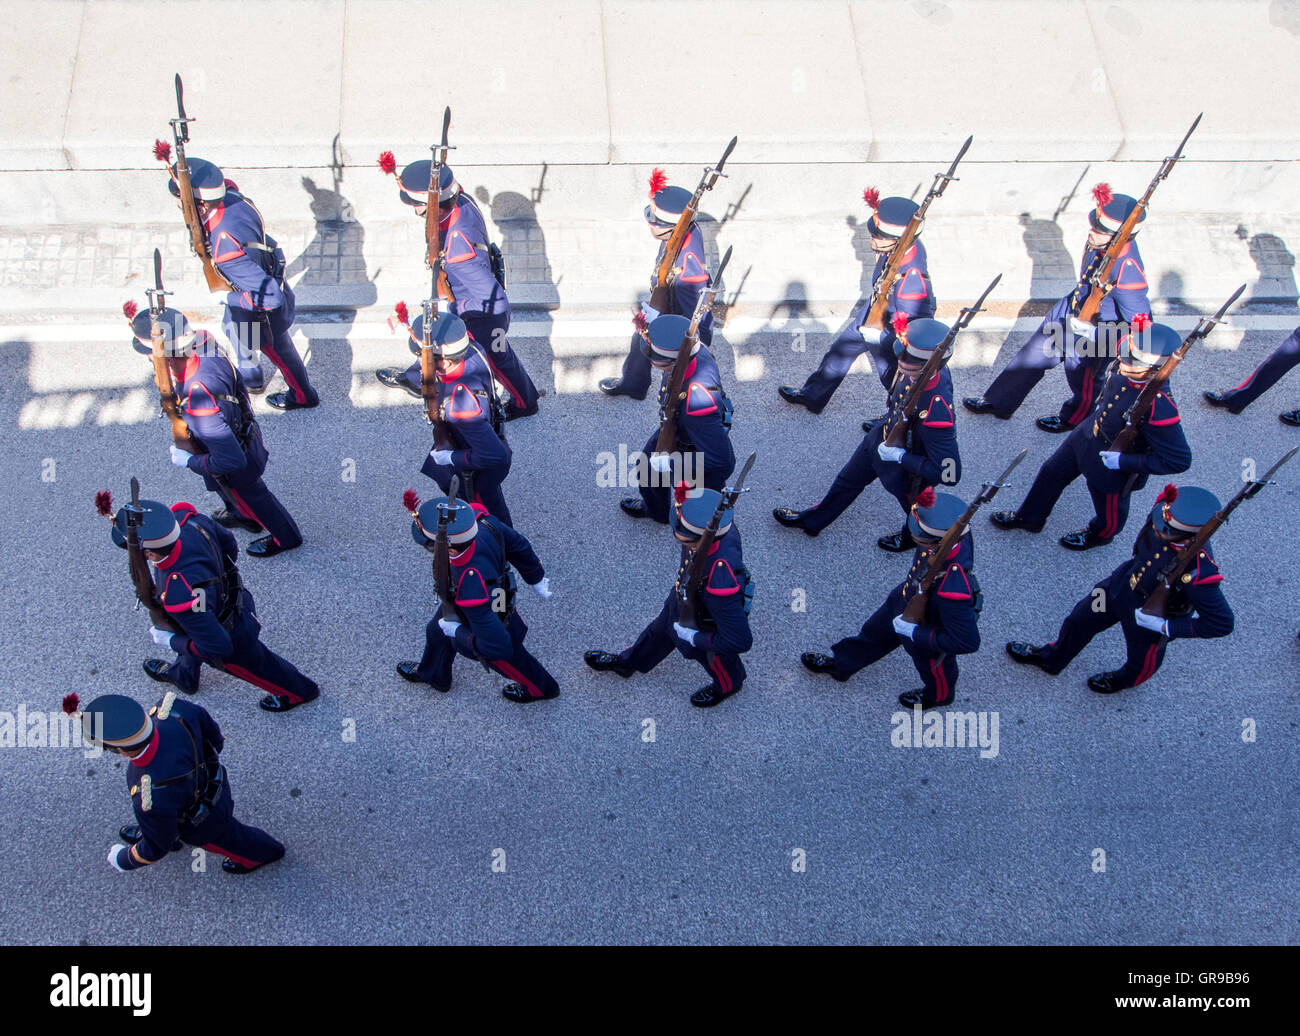 High Angle View Of Army Soldiers Marching On Street - Stock Image